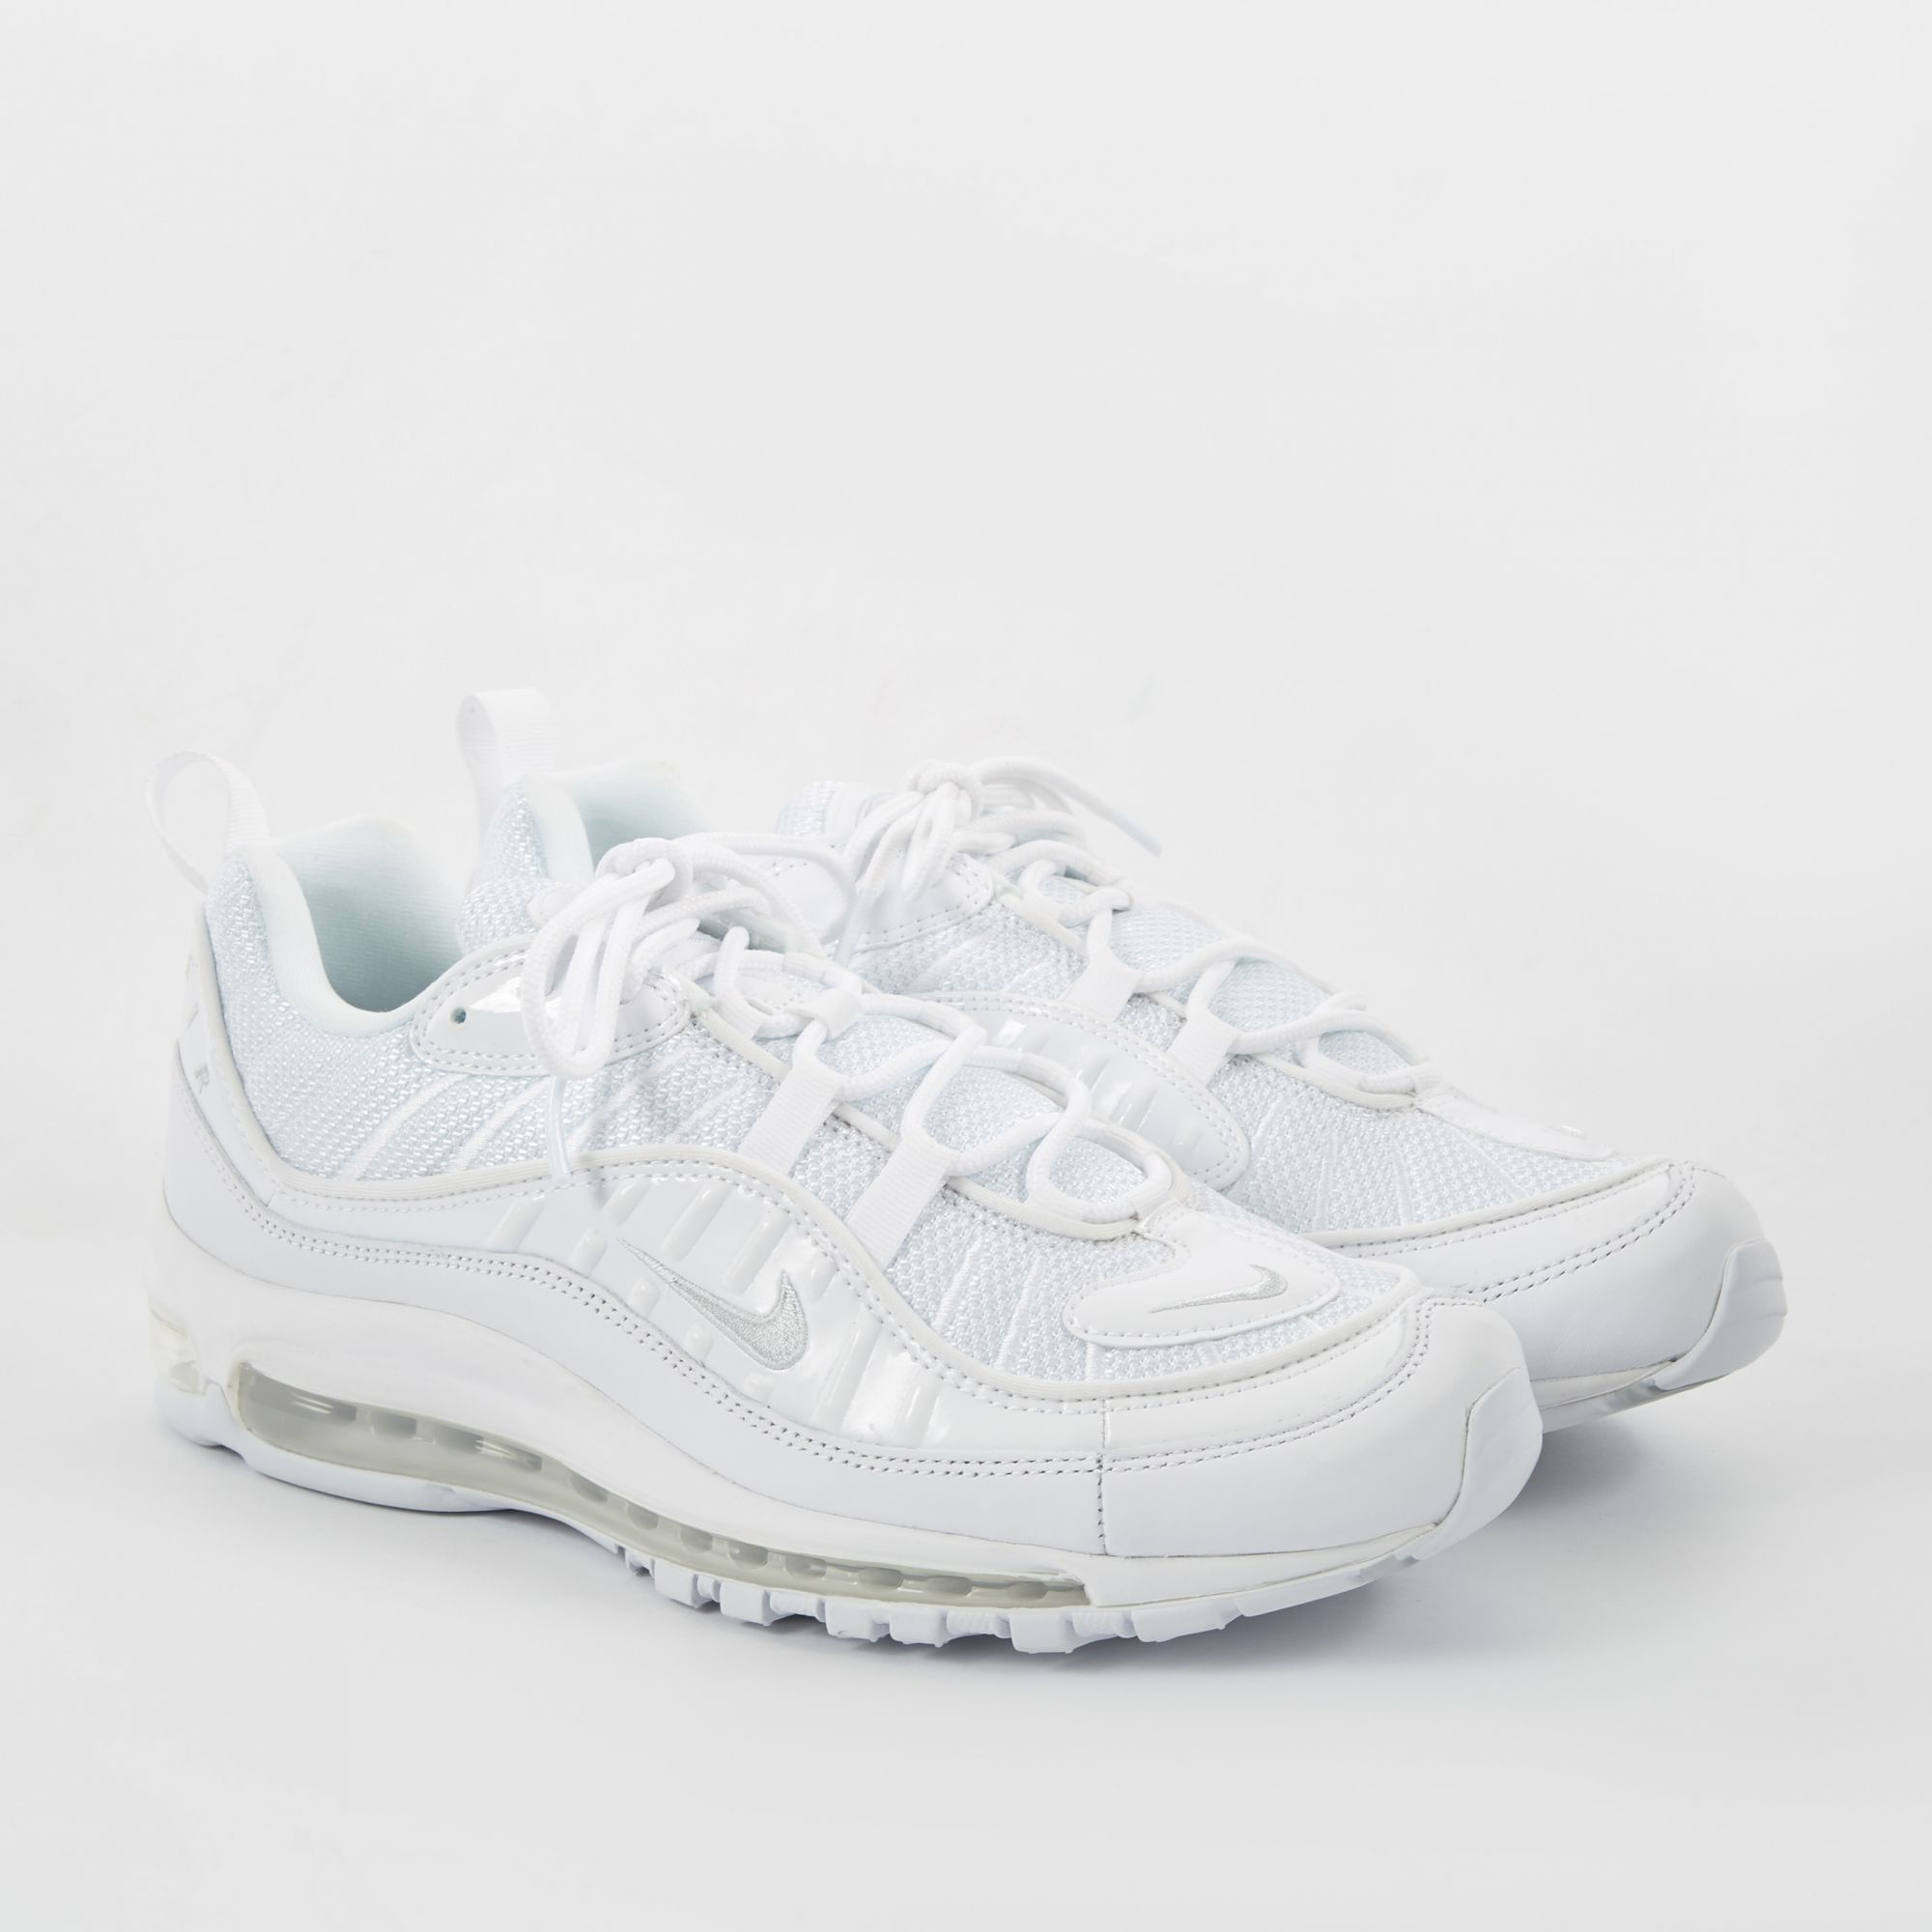 nike air max 98 white pure platinum & black